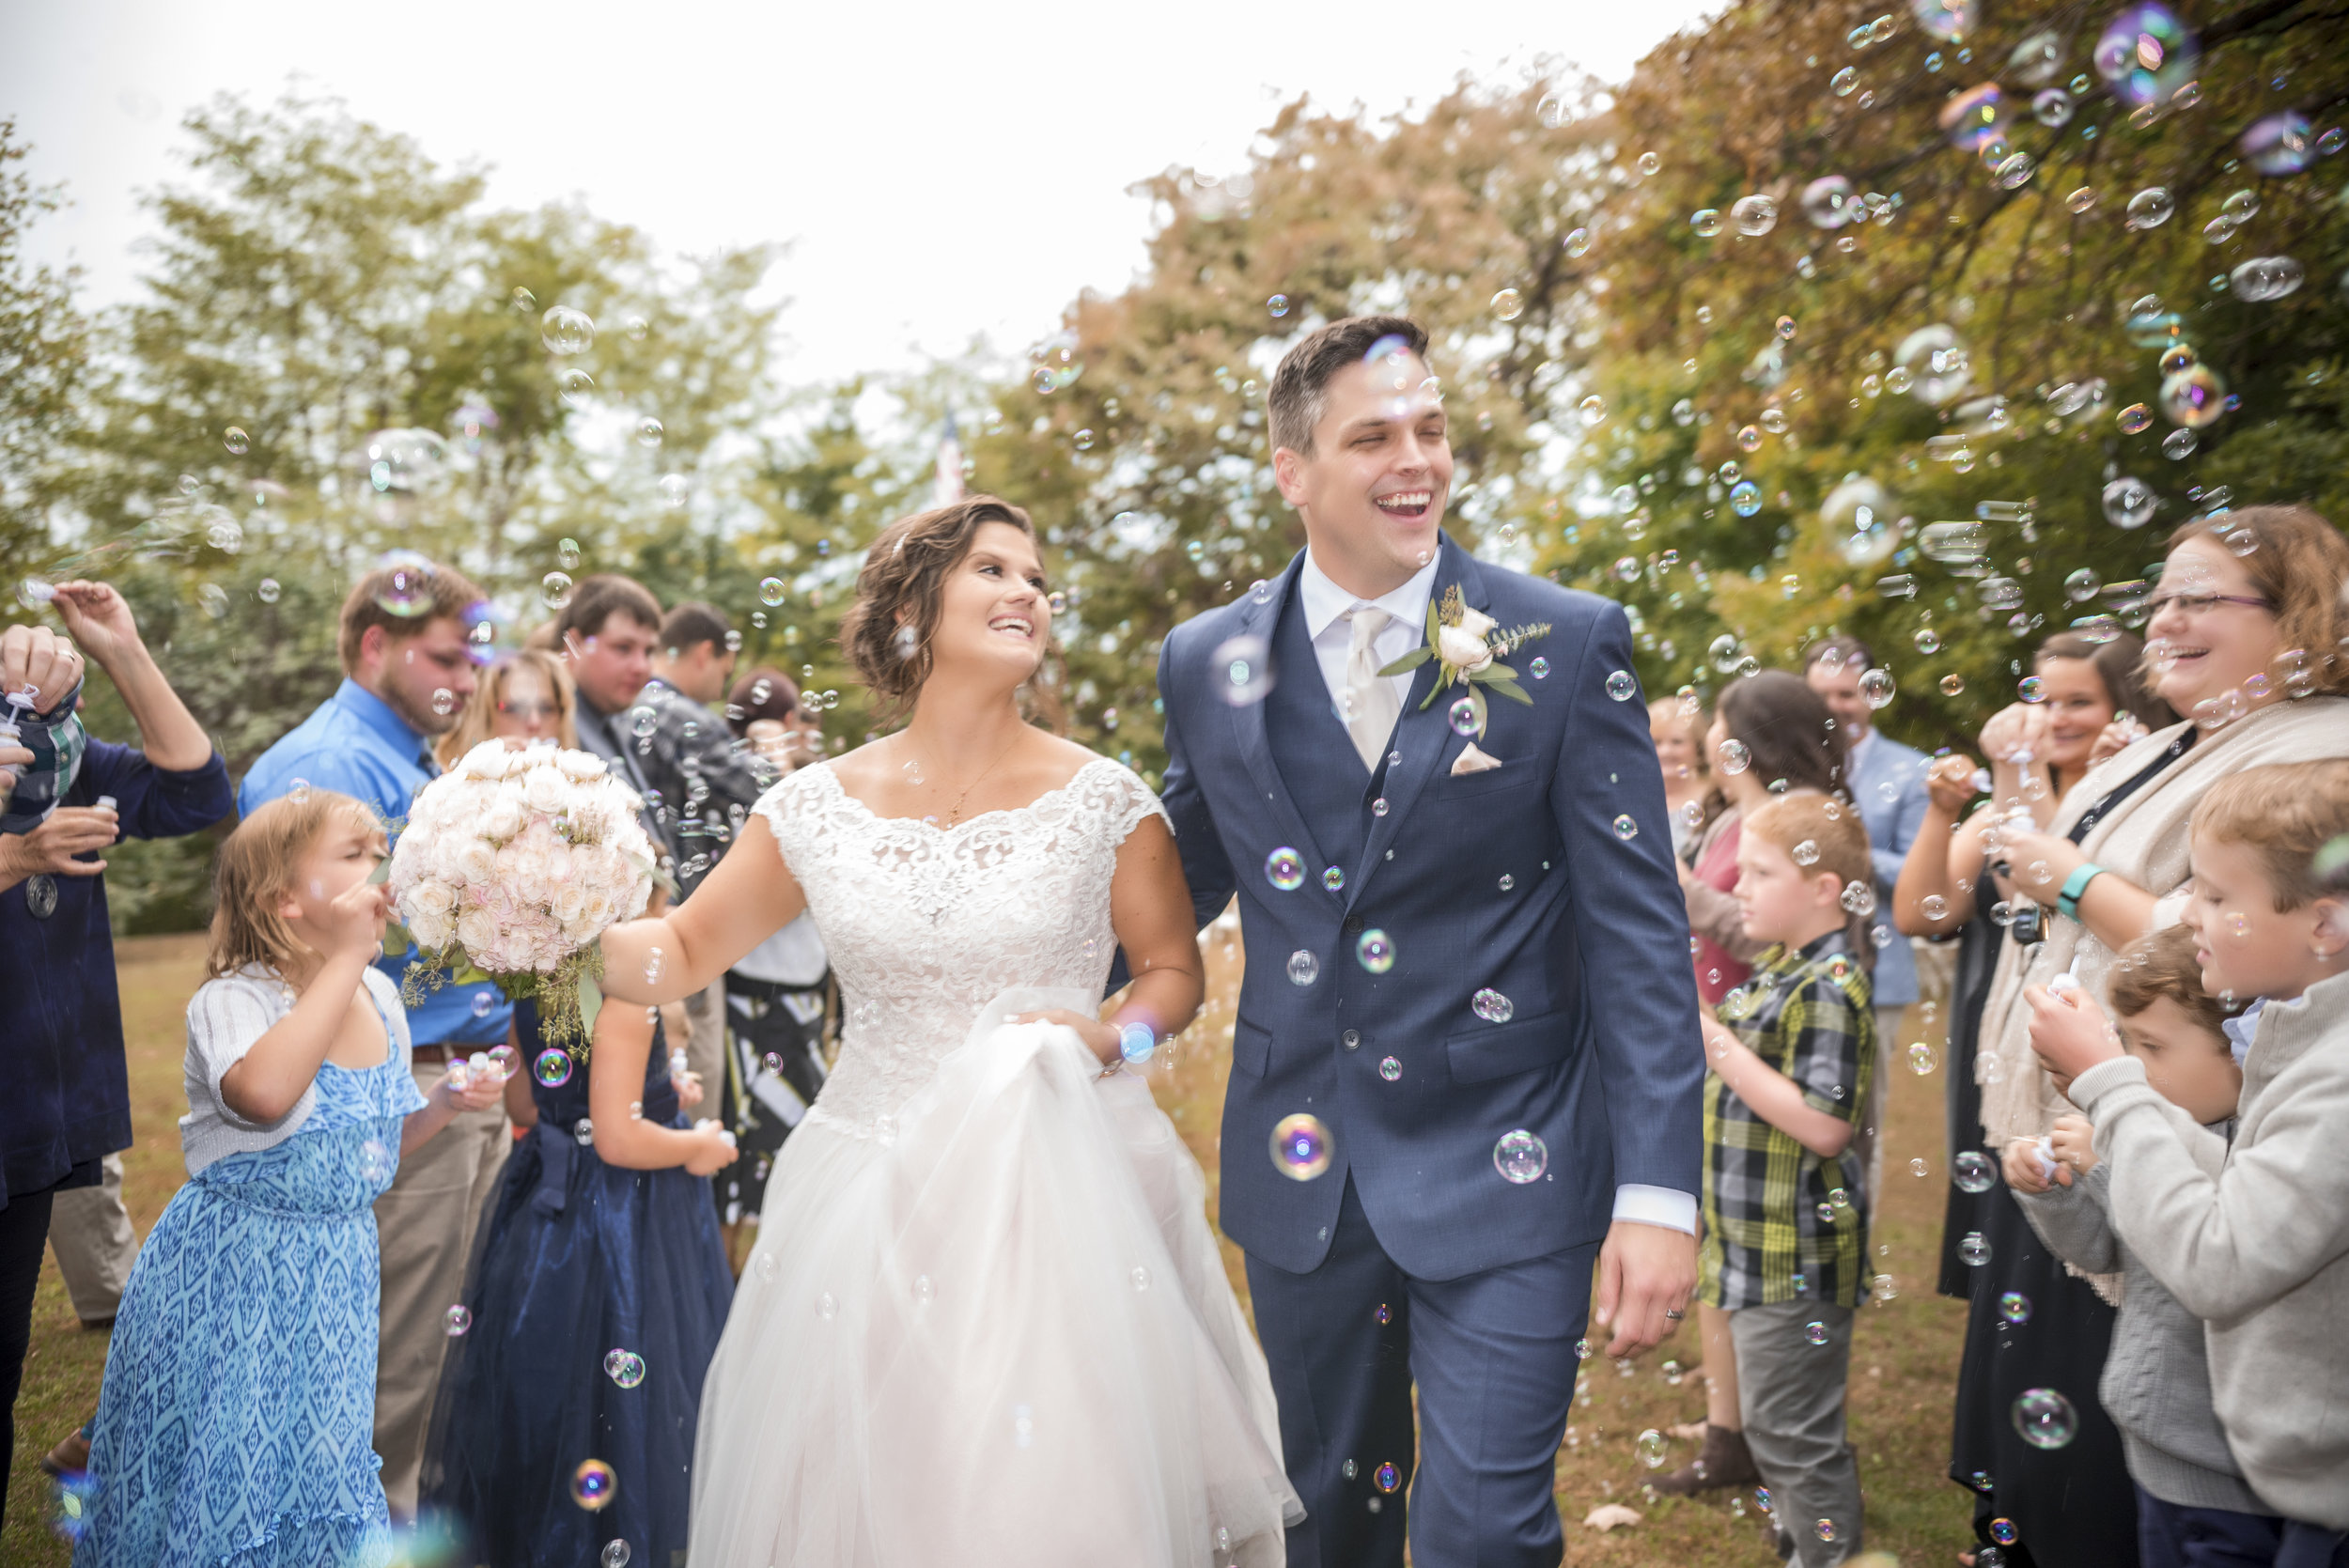 bride-groom-bouquet-bubbles-wedding-crowd-smiling.jpg